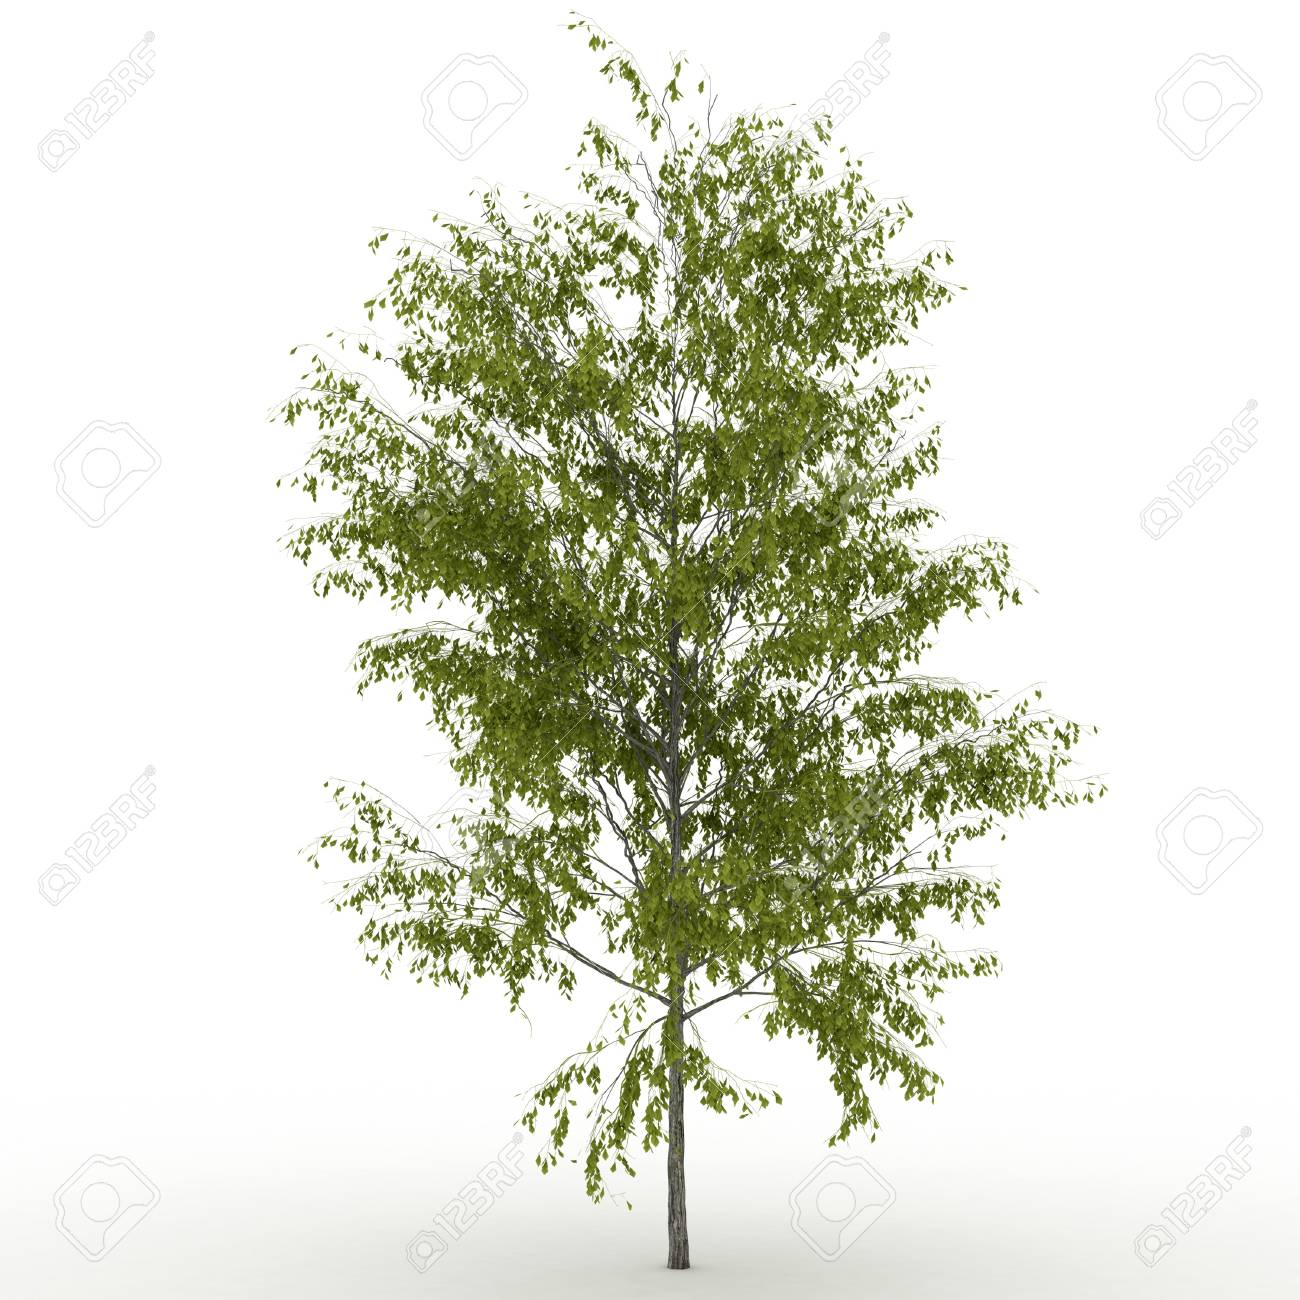 Isolated summer tree with  foliage Stock Photo - 17681852